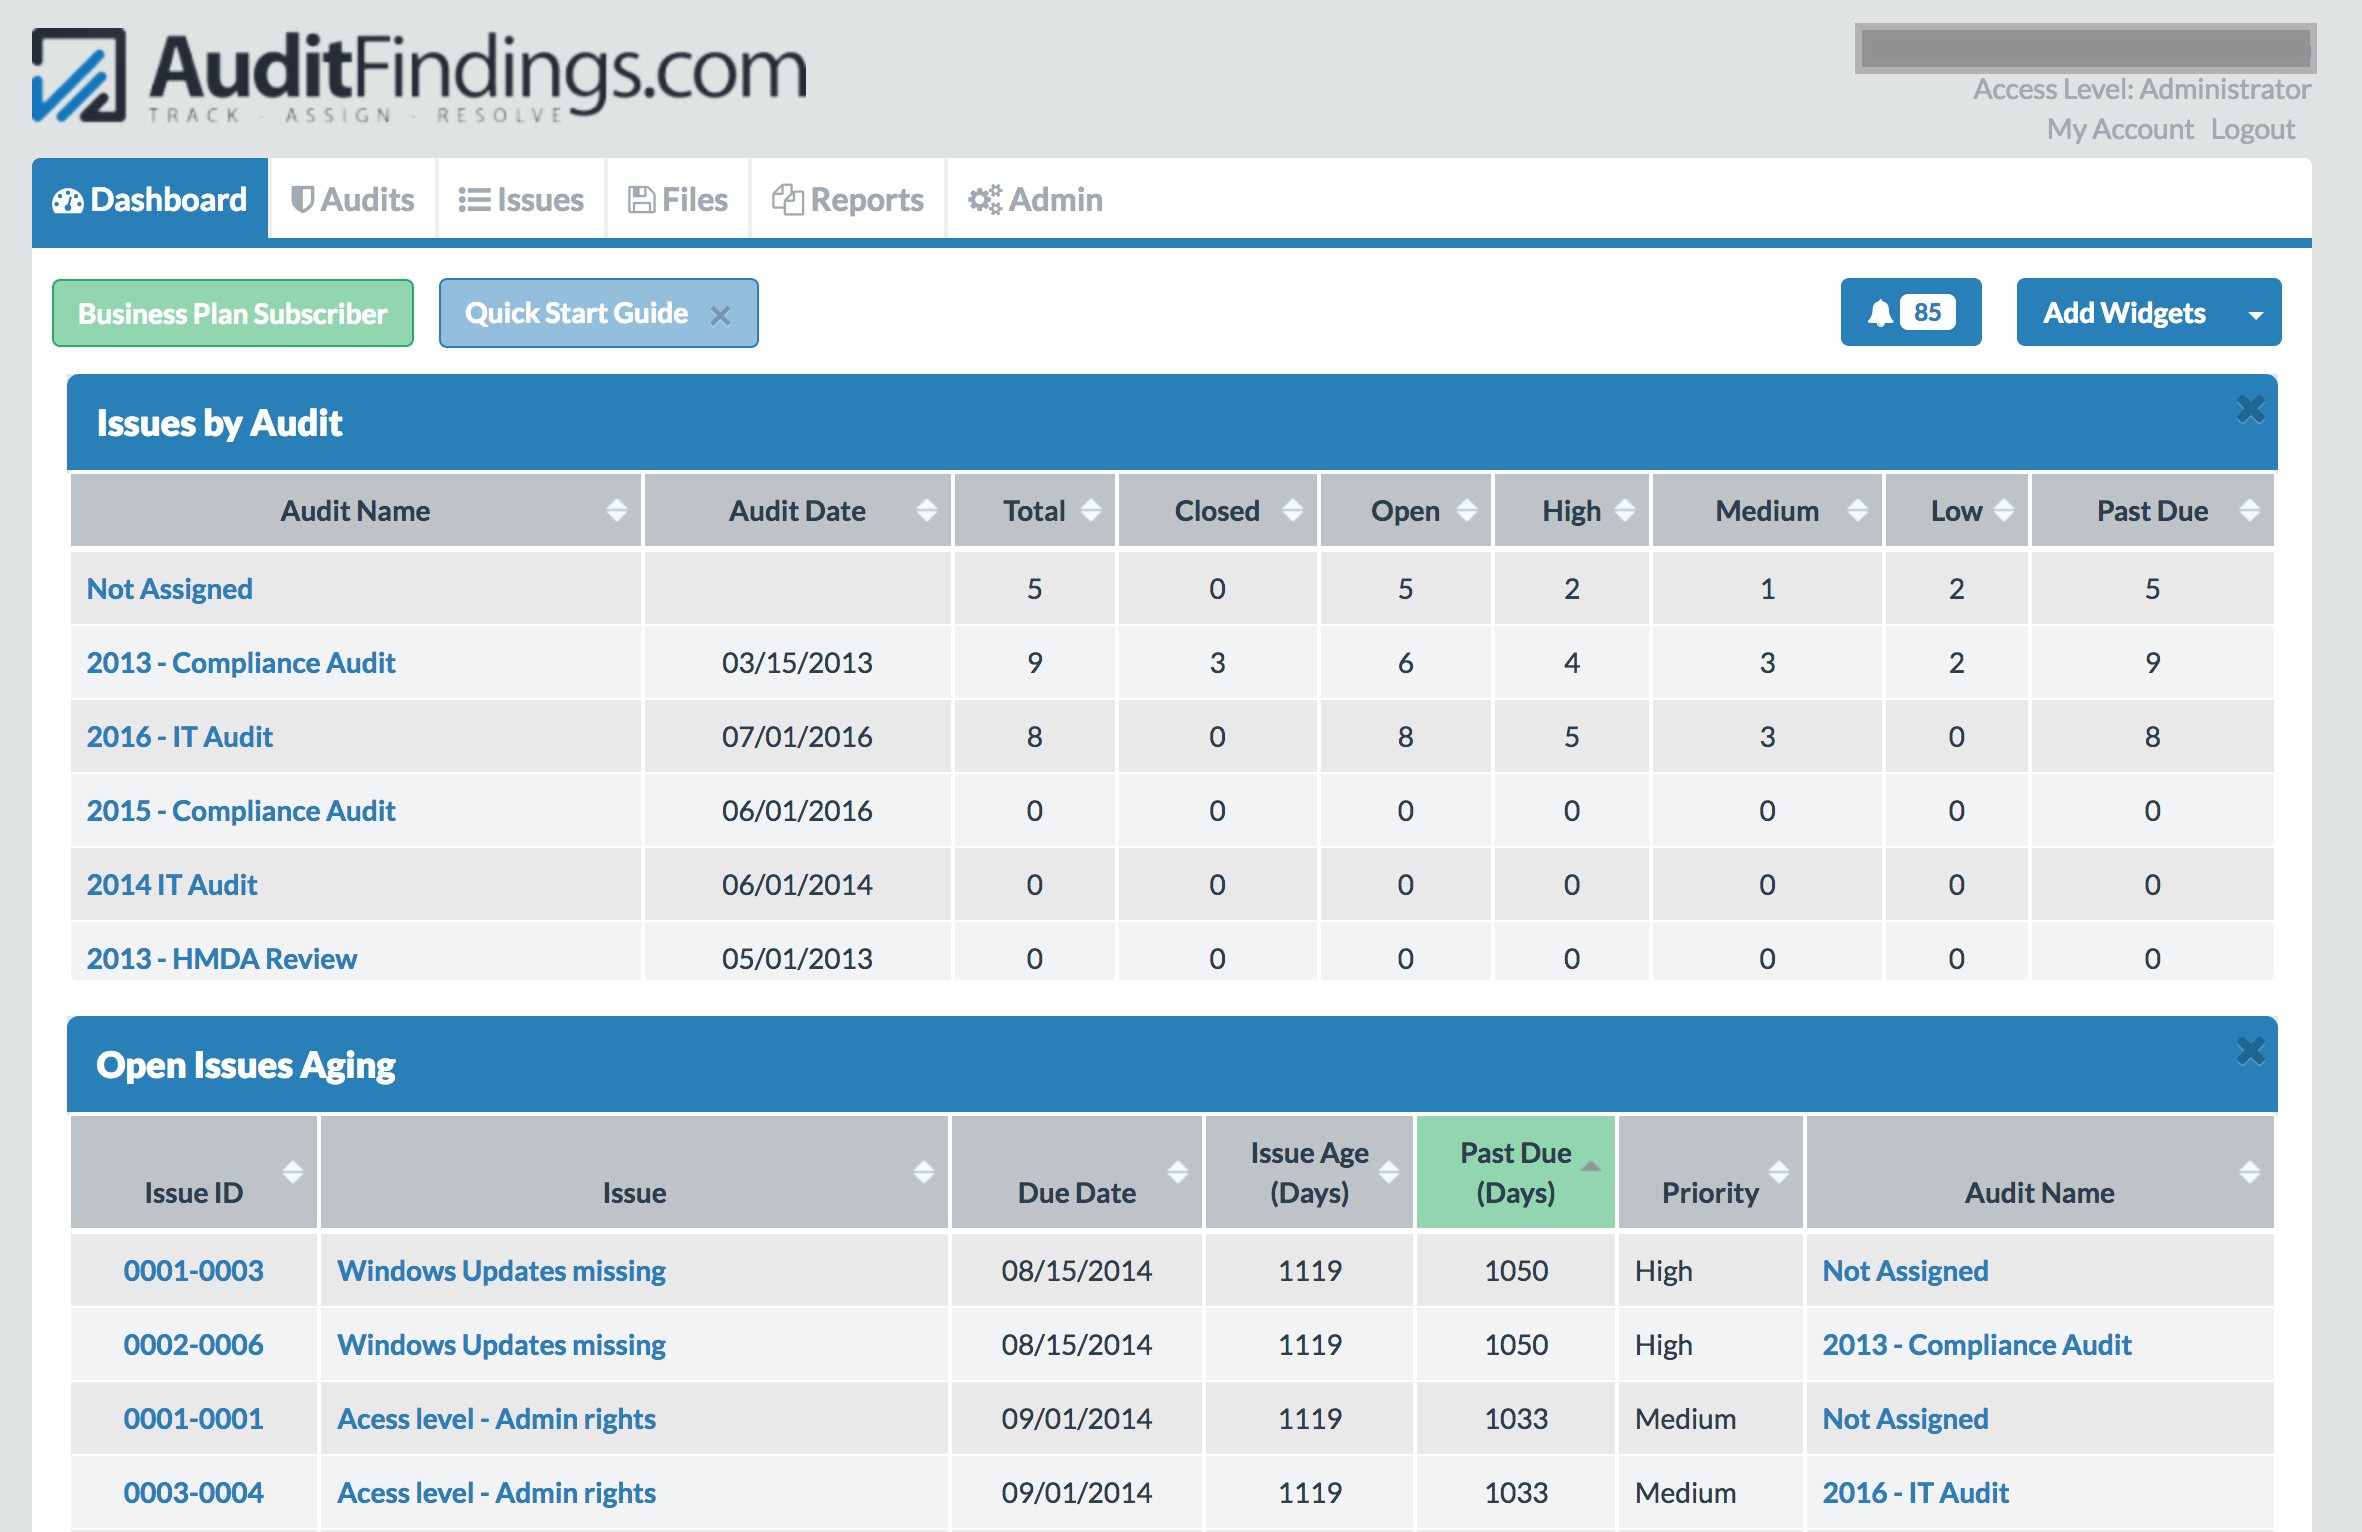 Audit Issue Tracking Dashboard in AuditFindings